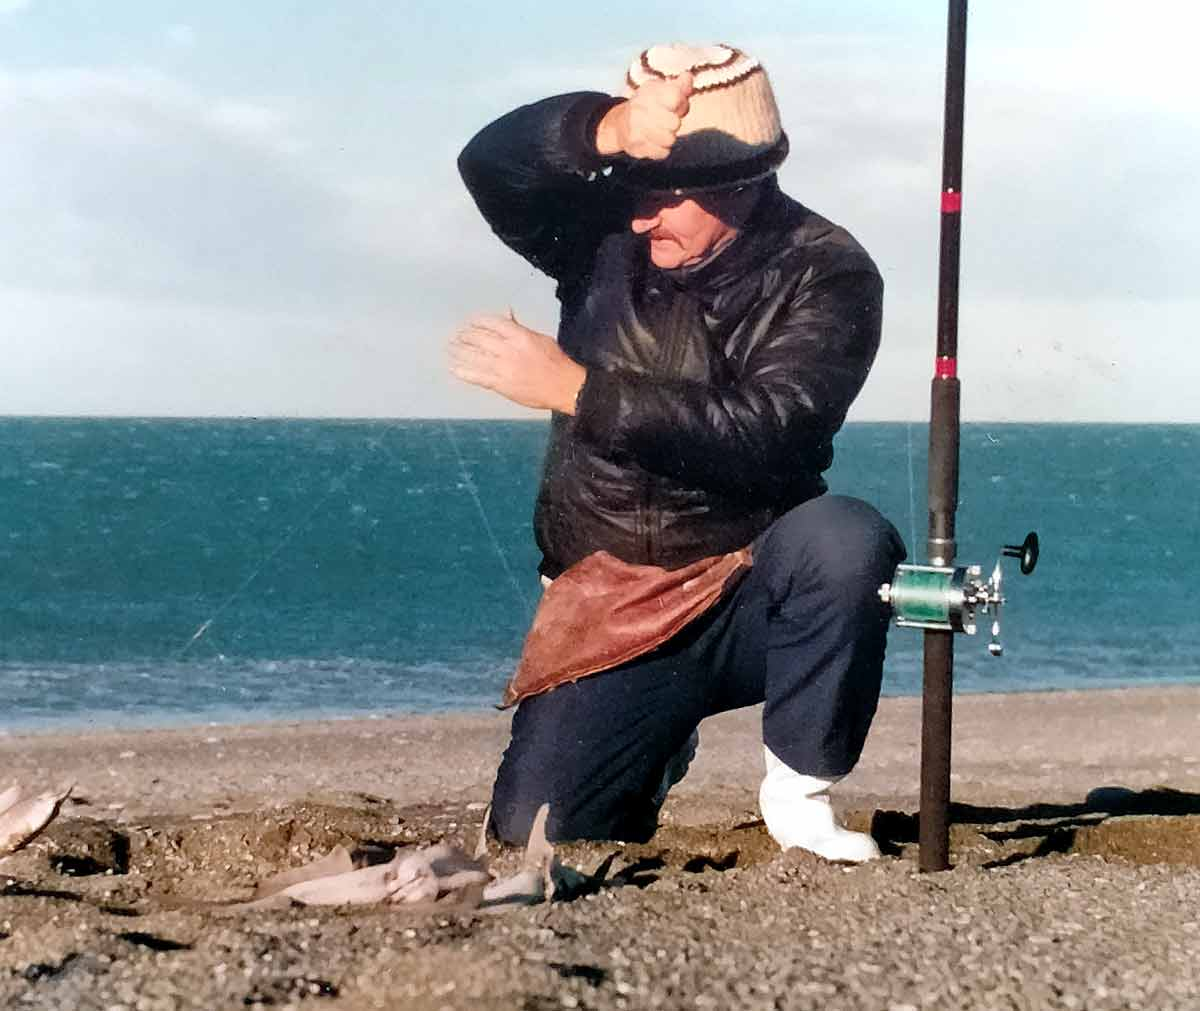 On some occassions when I have been surfcasting at Birdlings Flat over winter spiny dogfish have been so numerous it was impossible to catch anything else!